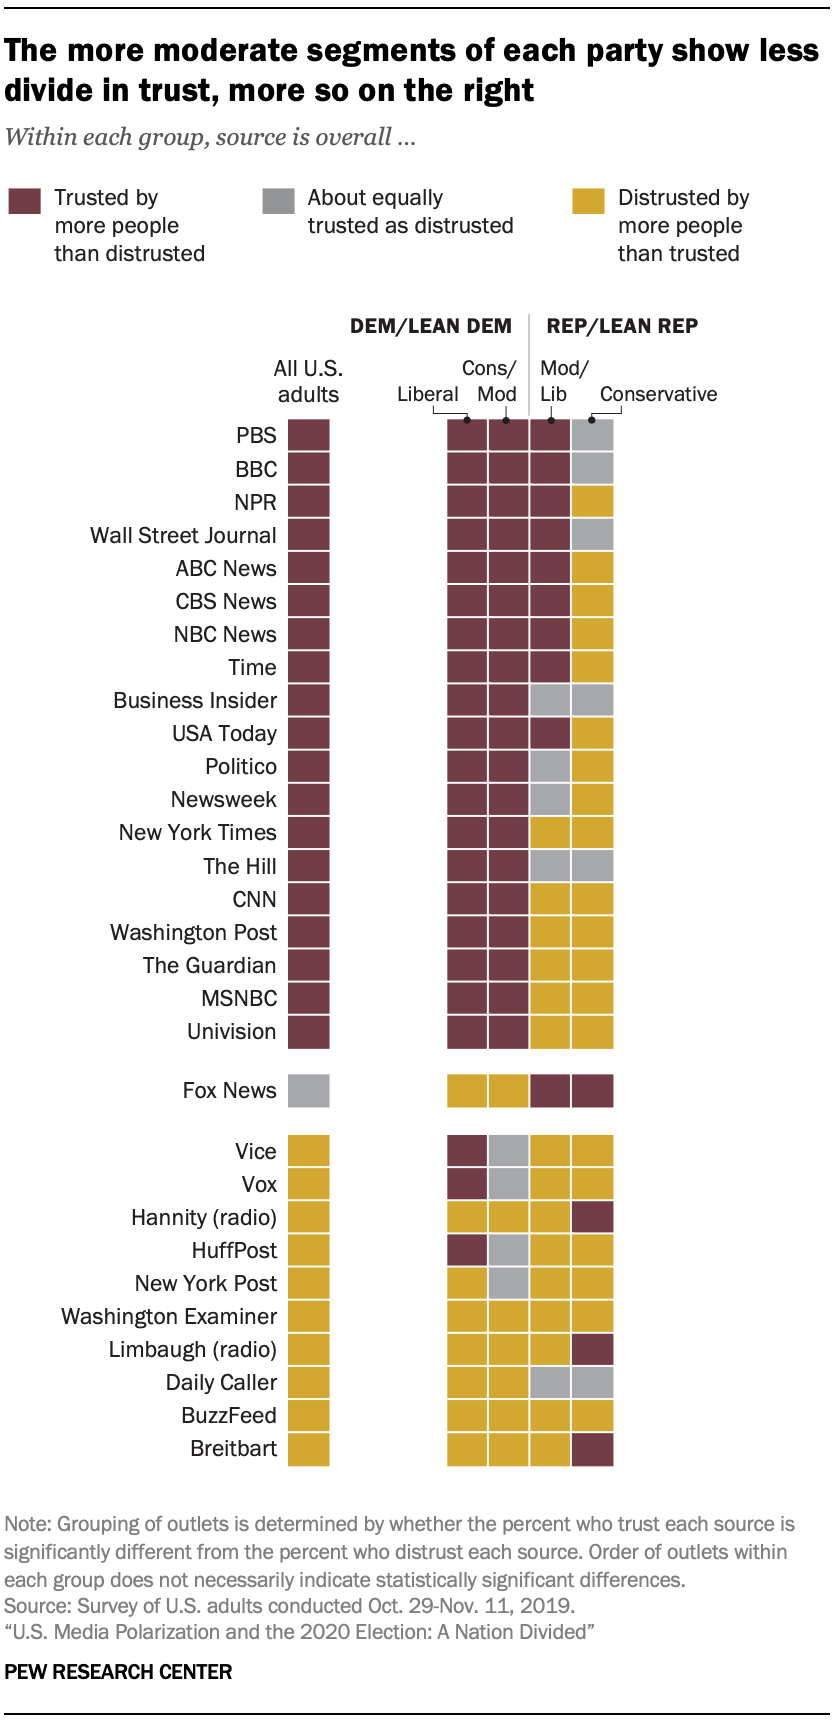 The more moderate segments of each party show less divide in trust, more so on the right